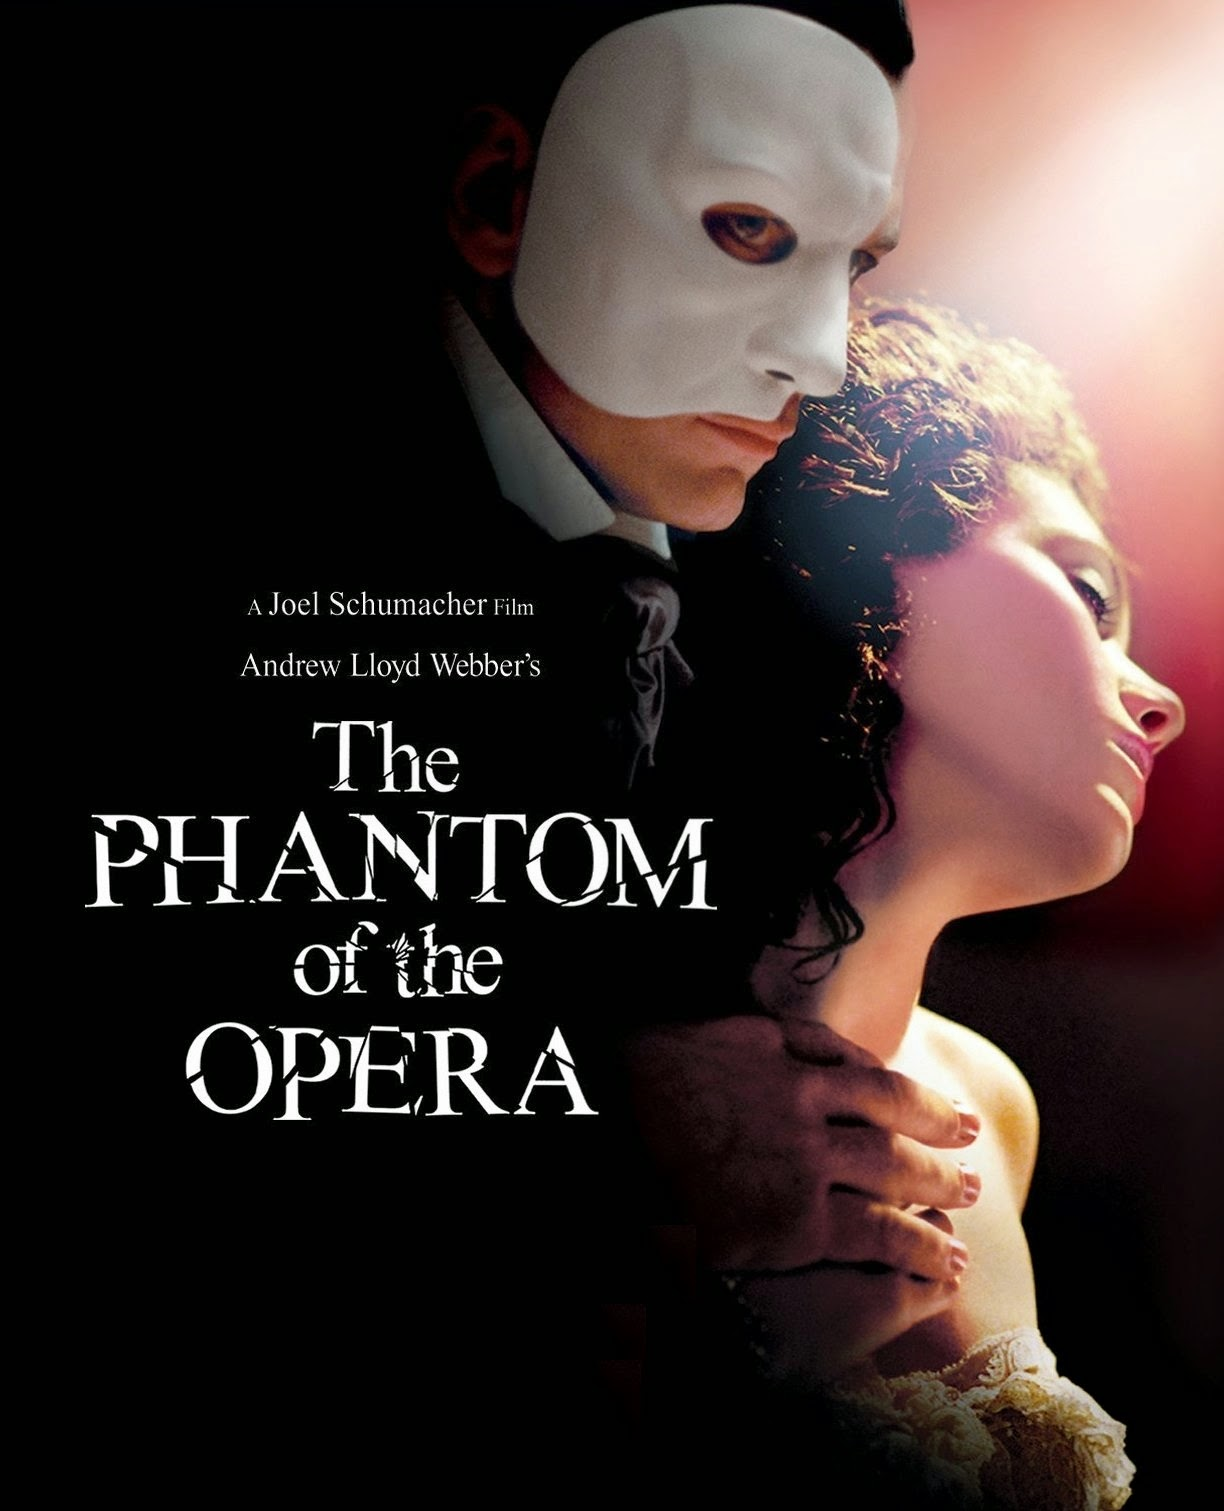 phantom of the opera movie video search engine at searchcom